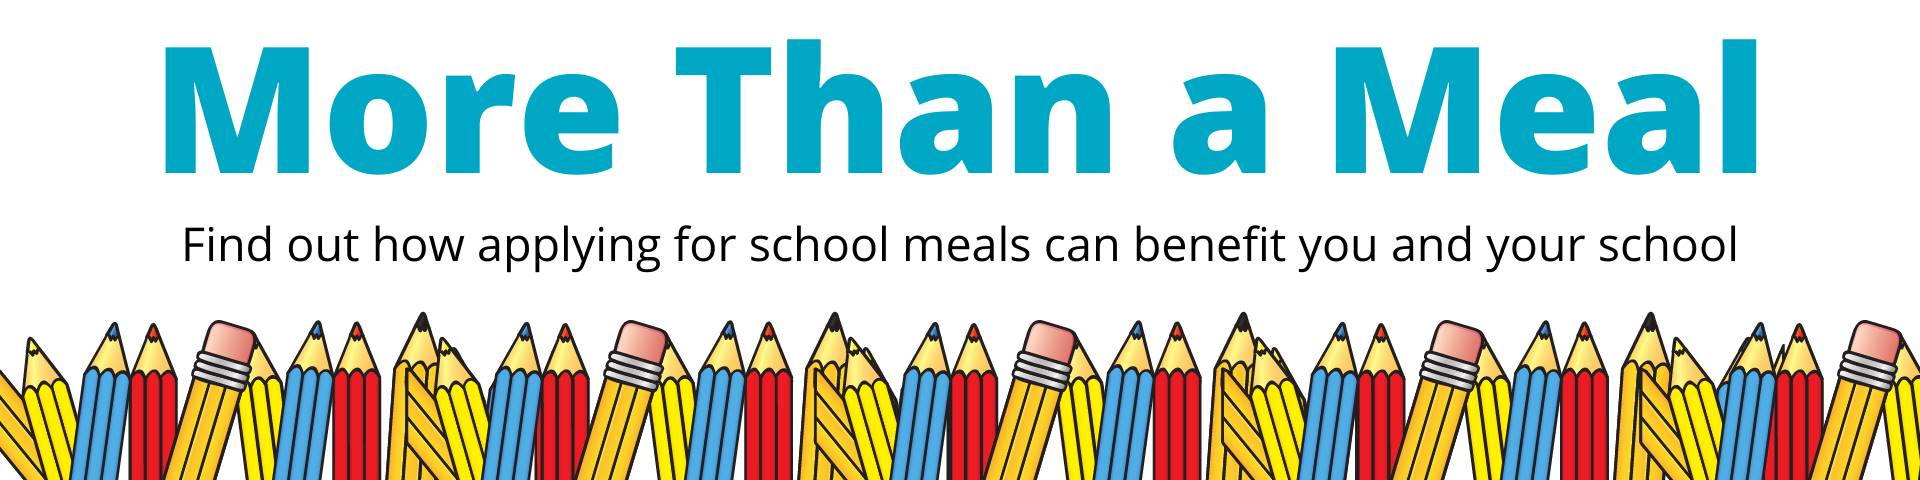 More than a Meal: Find out how applying for school meals can benefit you and your school